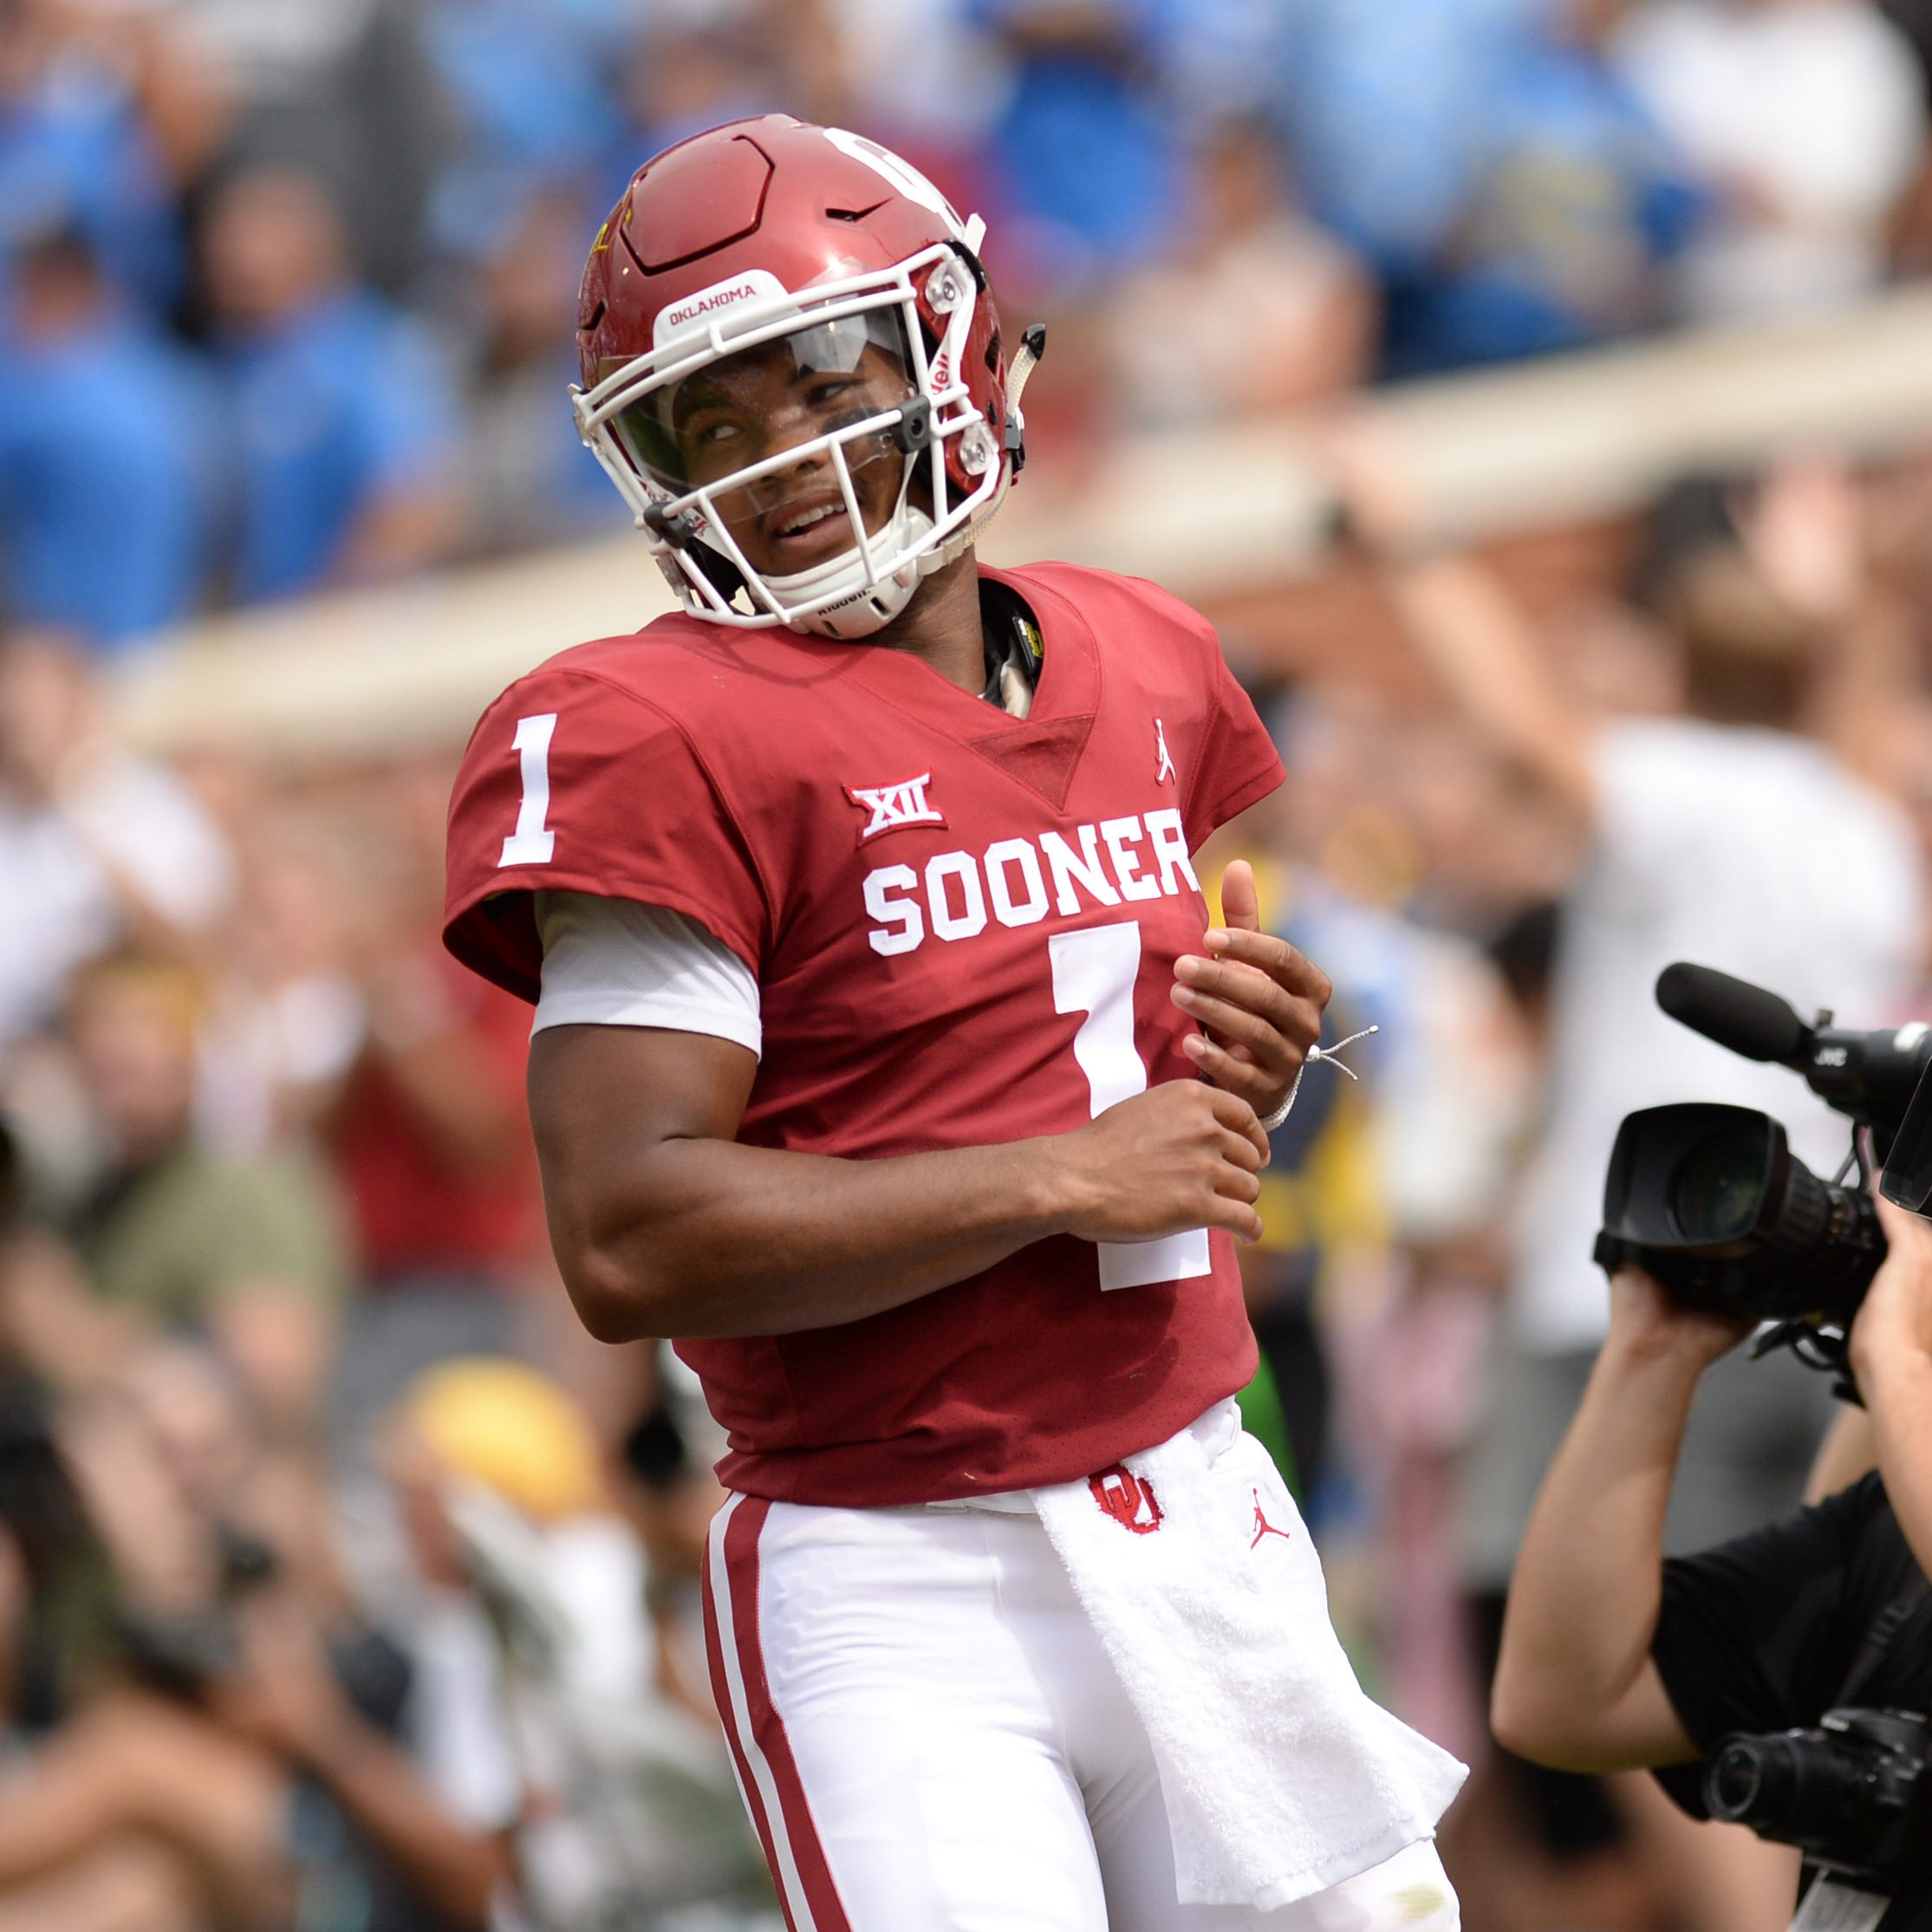 Kyler Murray to enter NFL Draft, but does it affect NY Giants' quarterback plans?